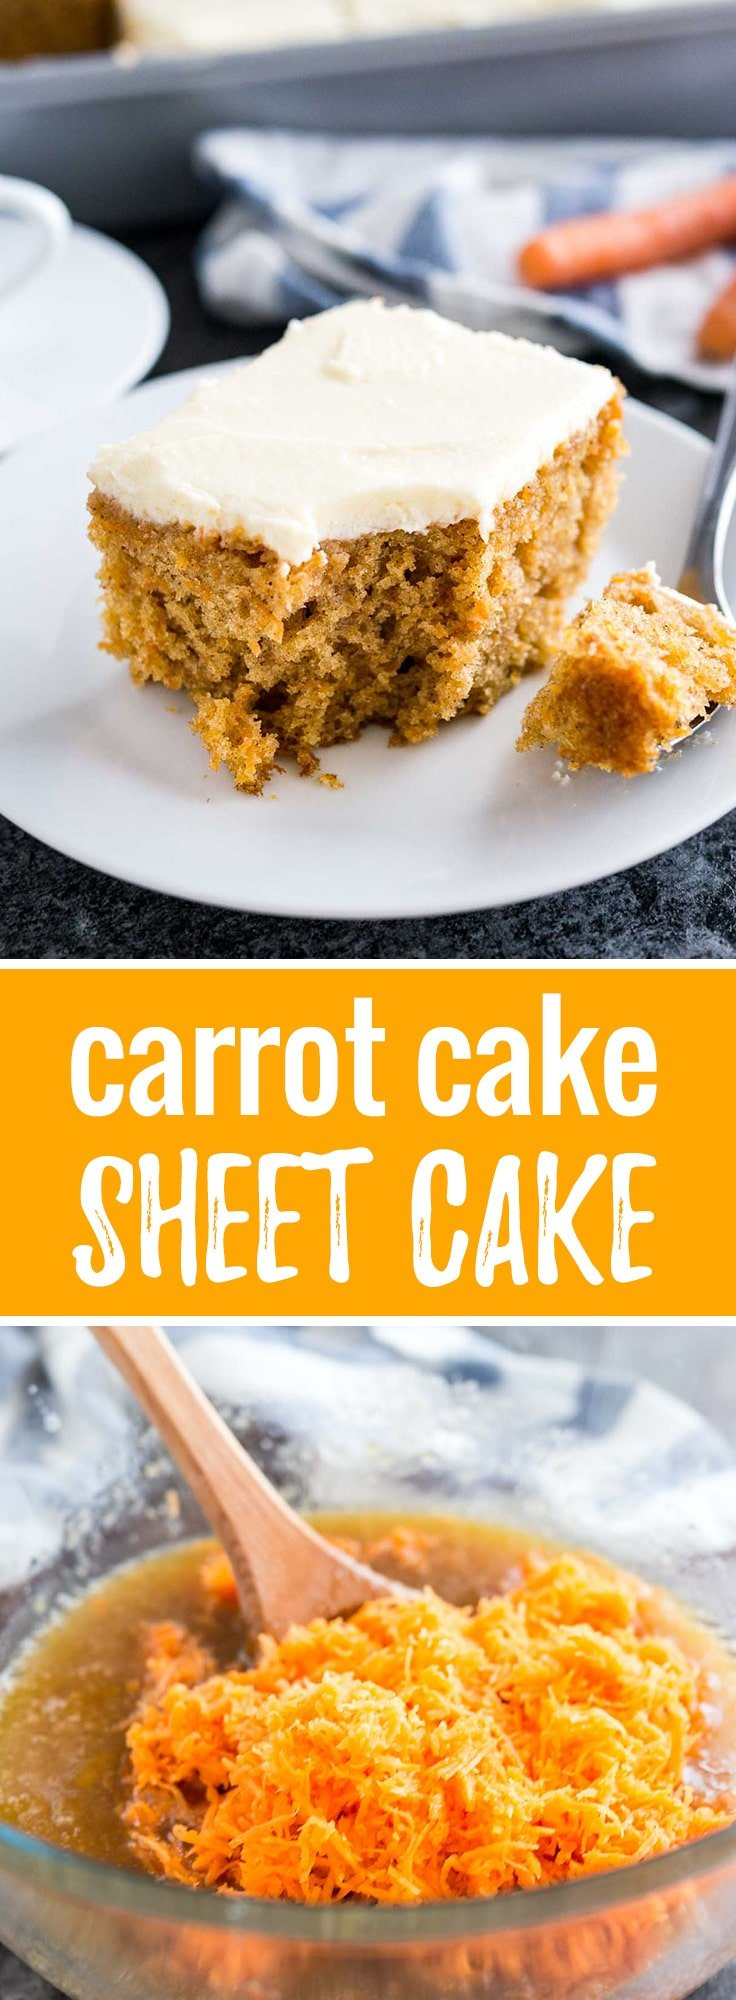 This easy Carrot Cake is deliciously moist and topped with a smooth cream cheese frosting! A nut-free sheet cake that is ready in 35 minutes and super simple to throw together.